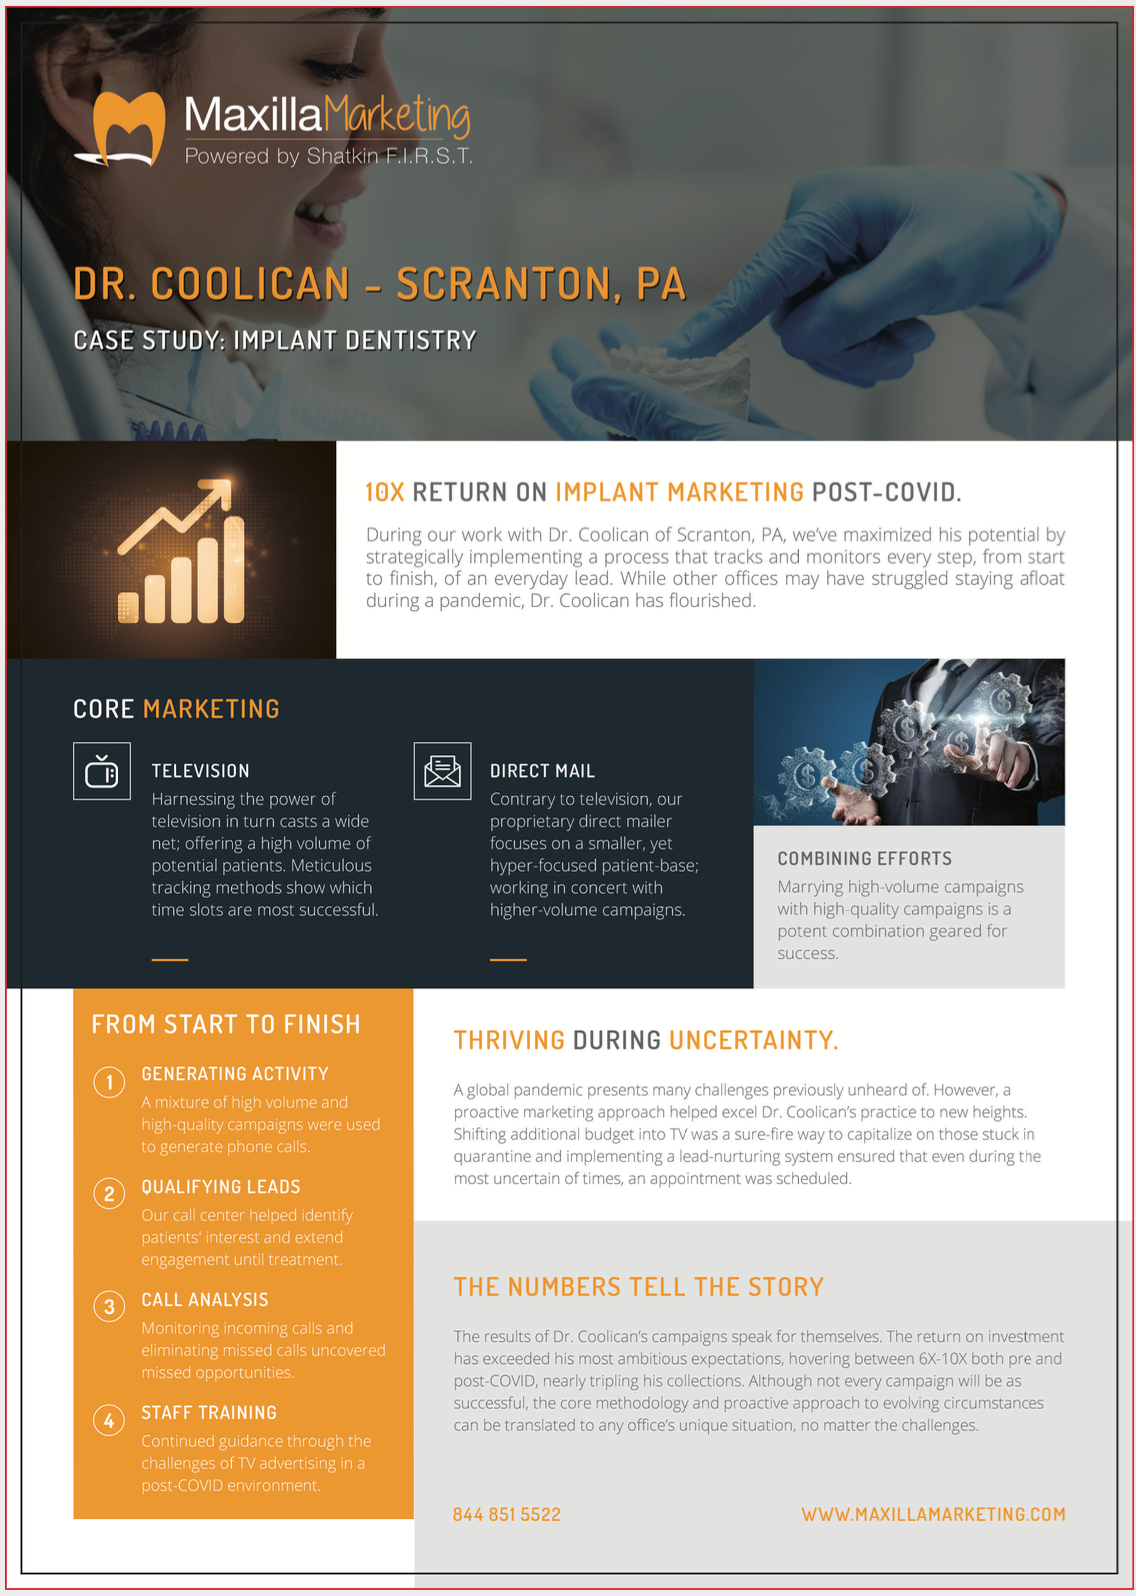 Dental Marketing coolican Case Study: Coolican Dental